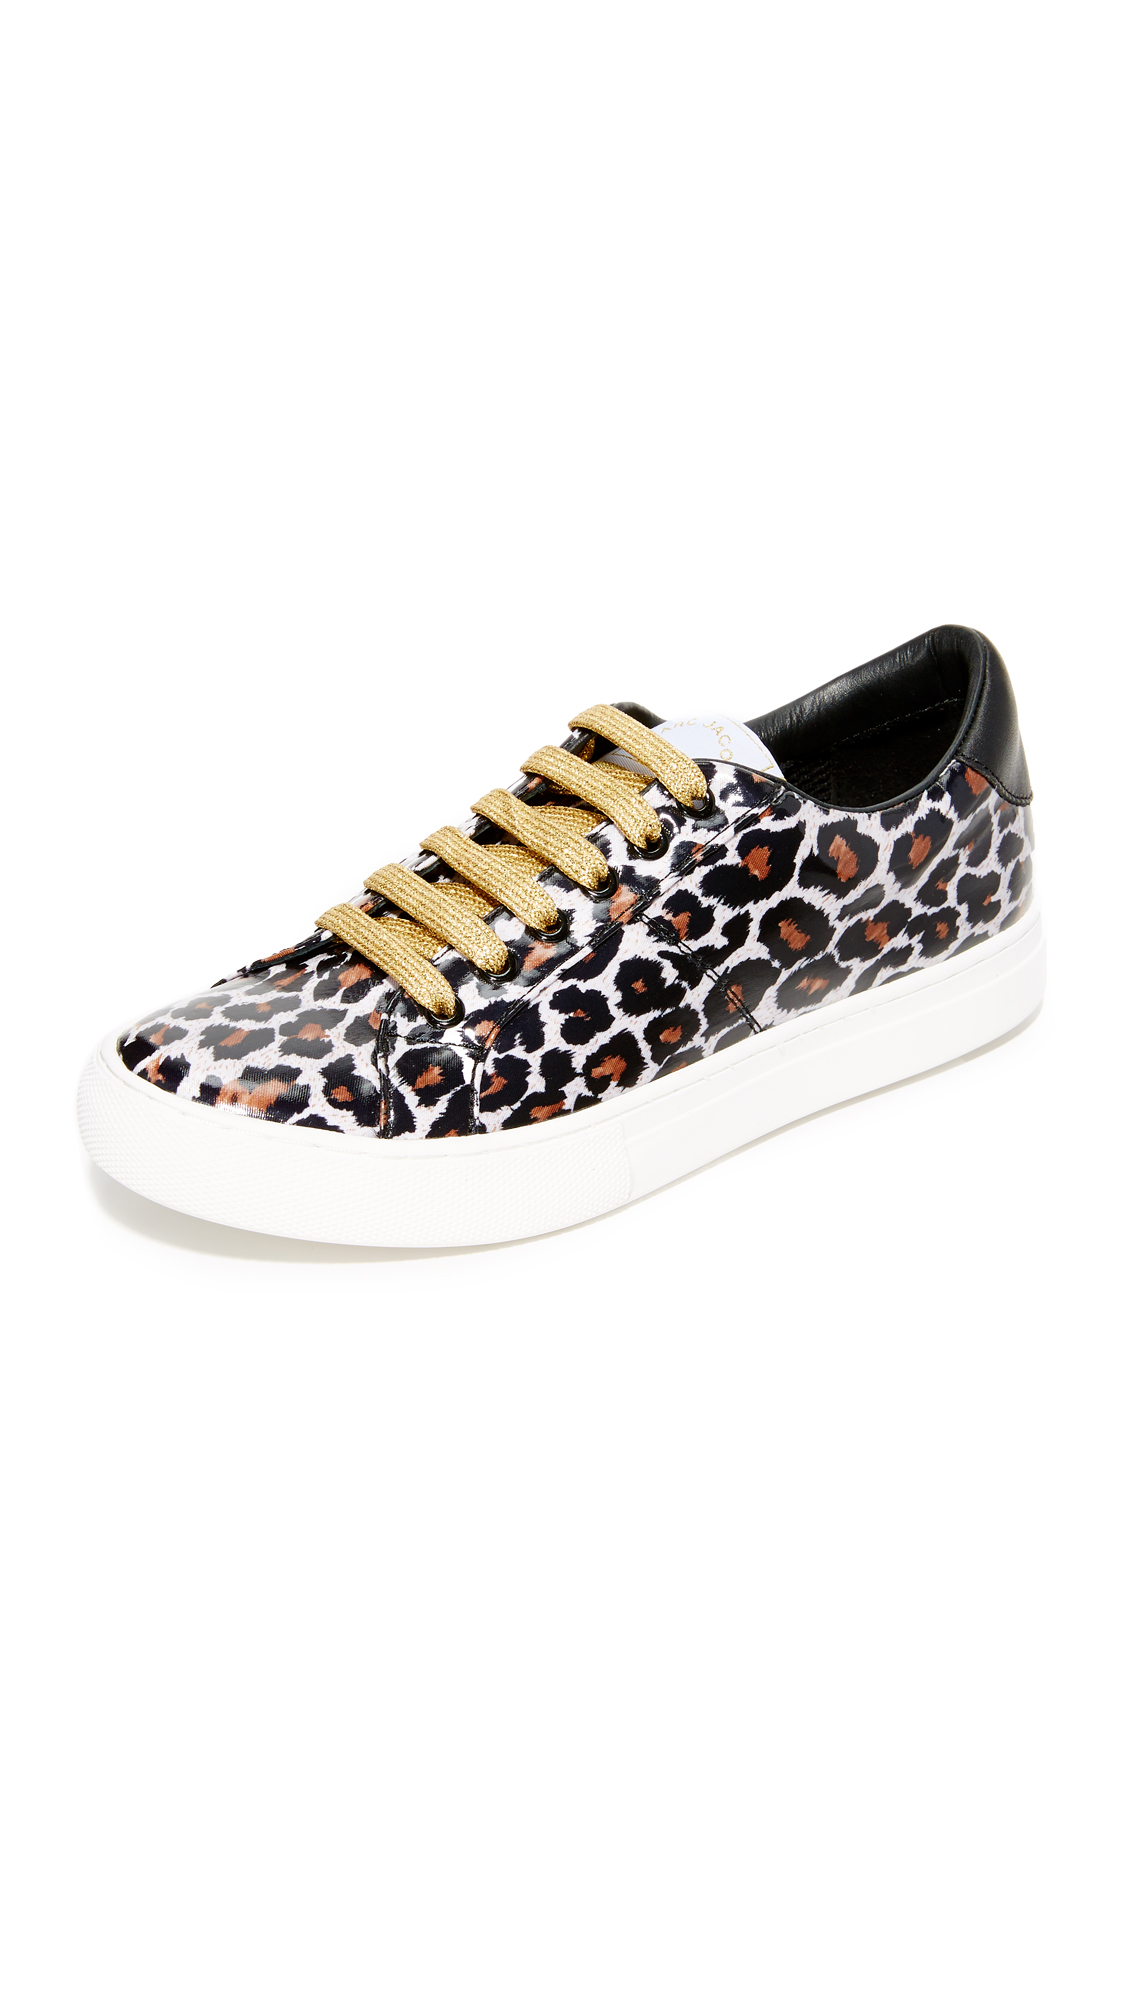 marc jacobs female marc jacobs empire lace up sneakers natural multi